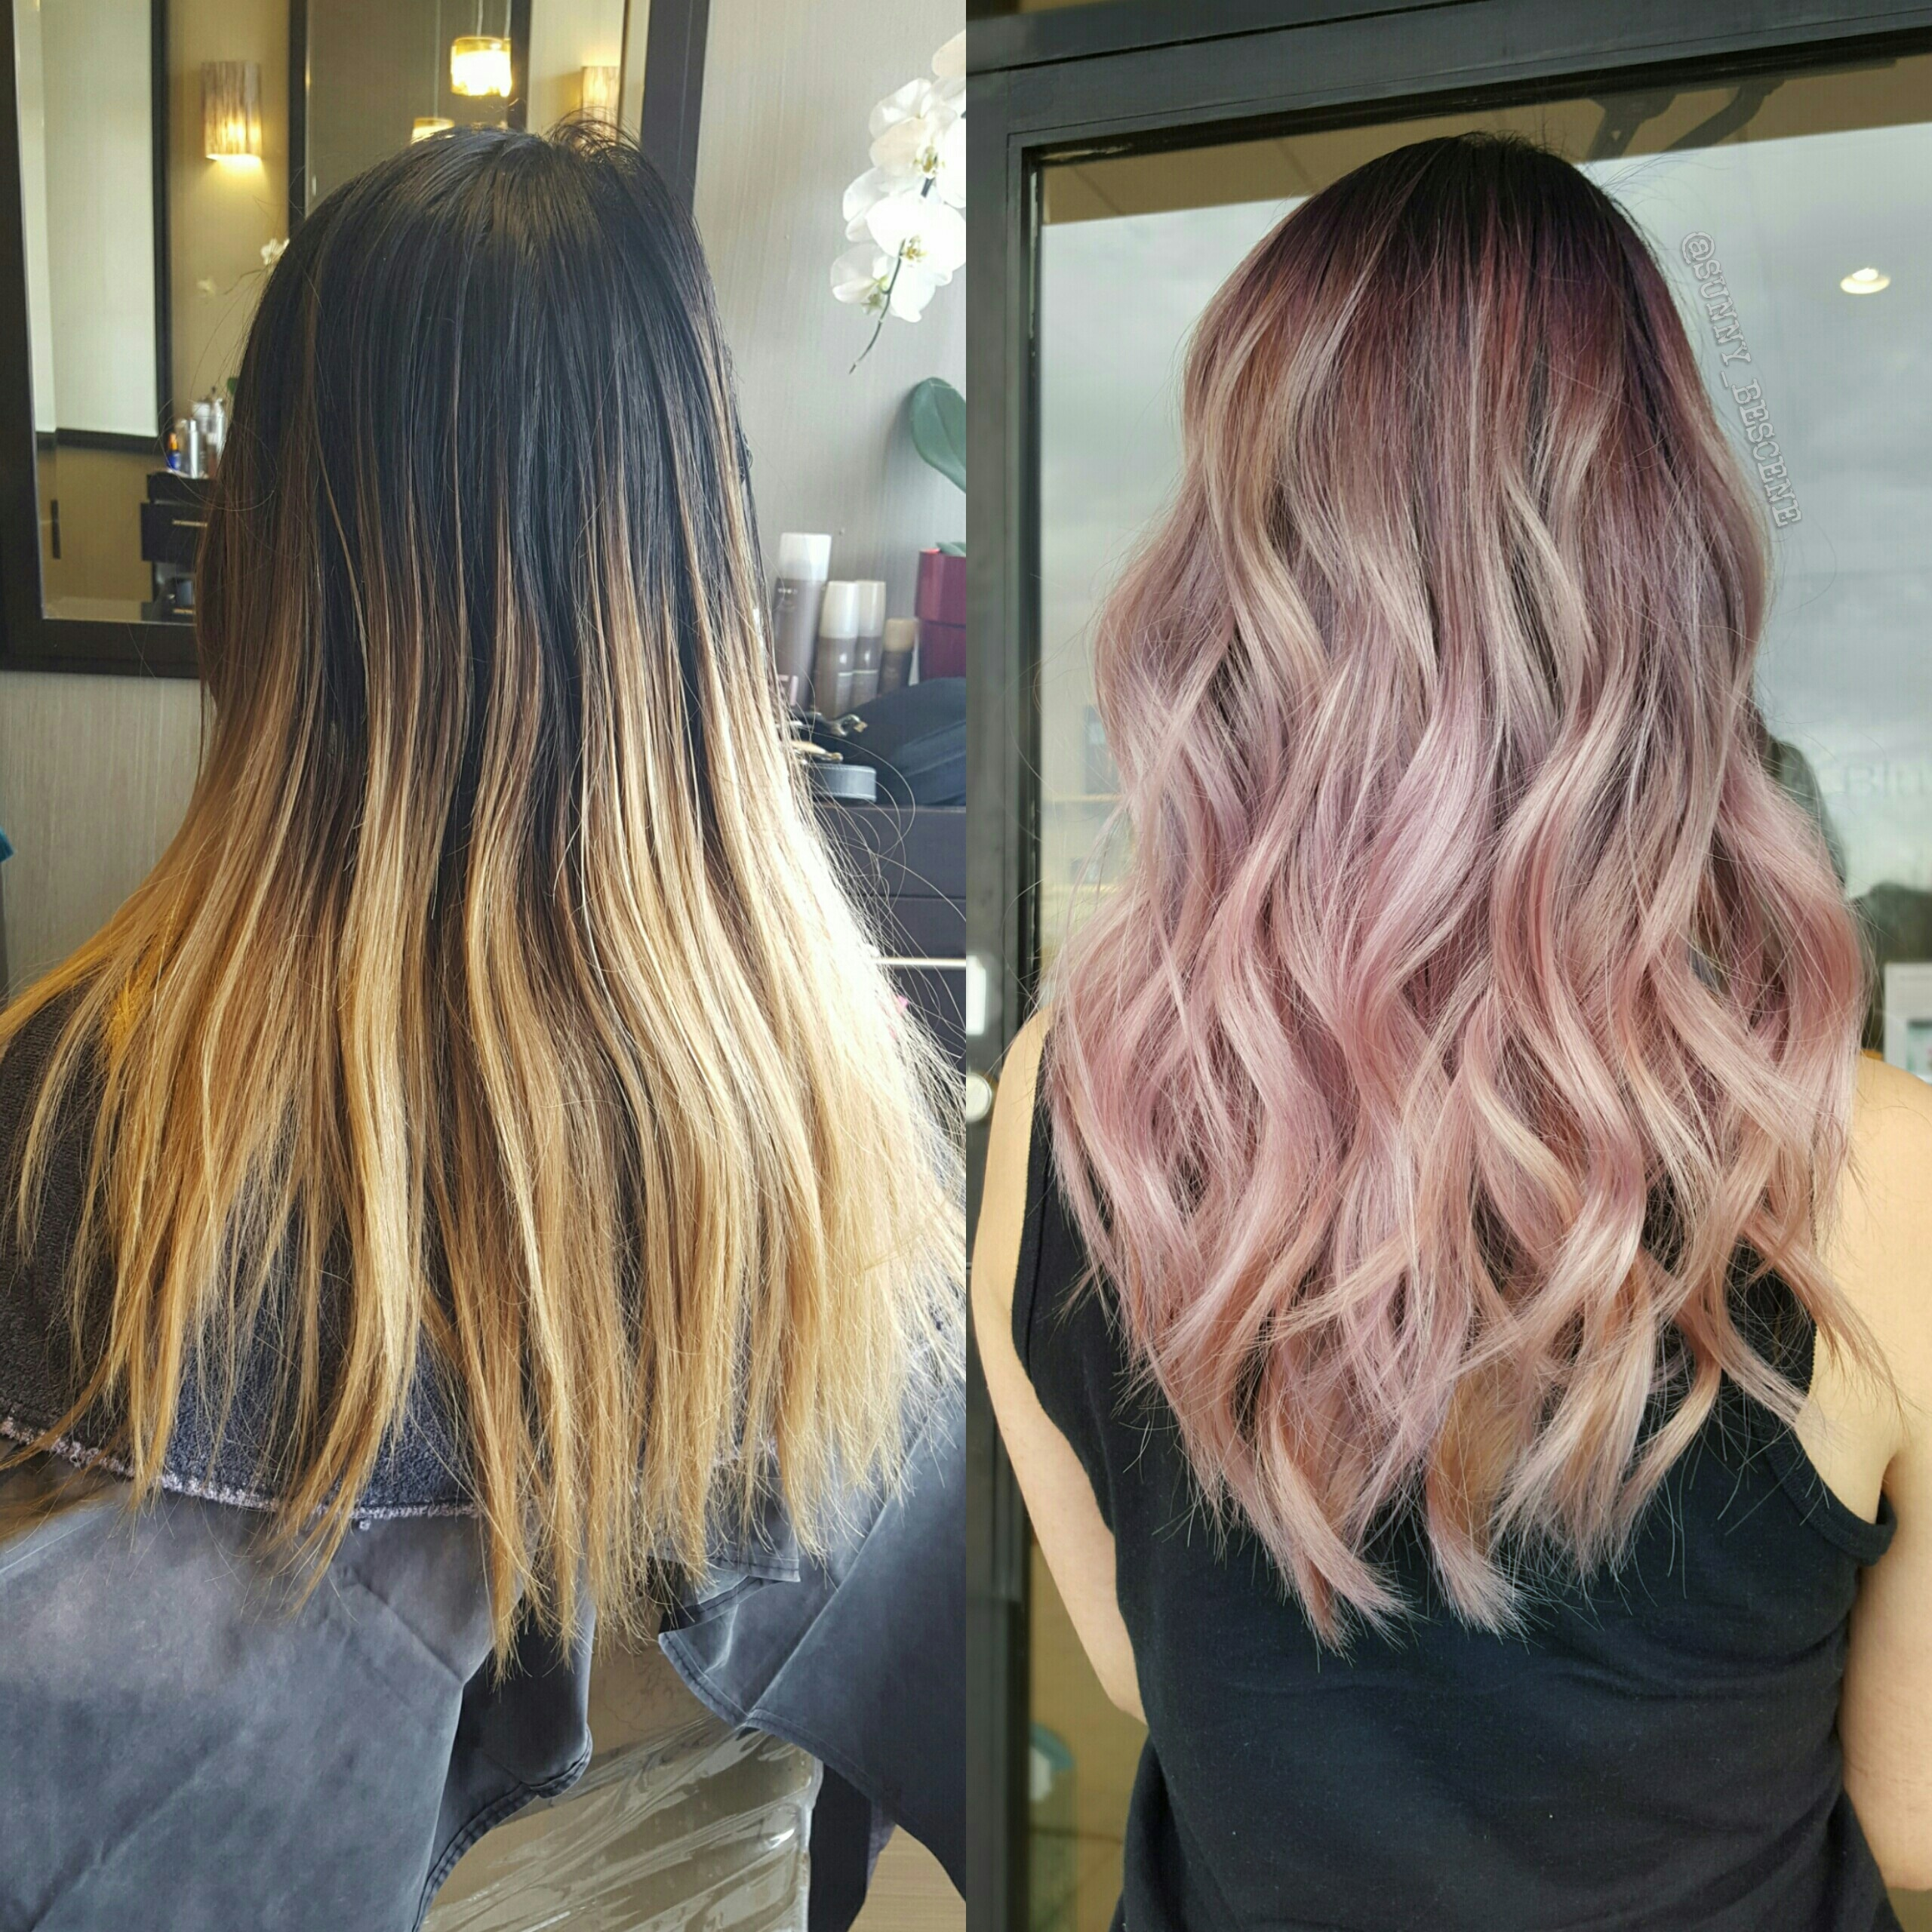 Transformation: Overgrown Ombré to Refreshed Pastel Melt